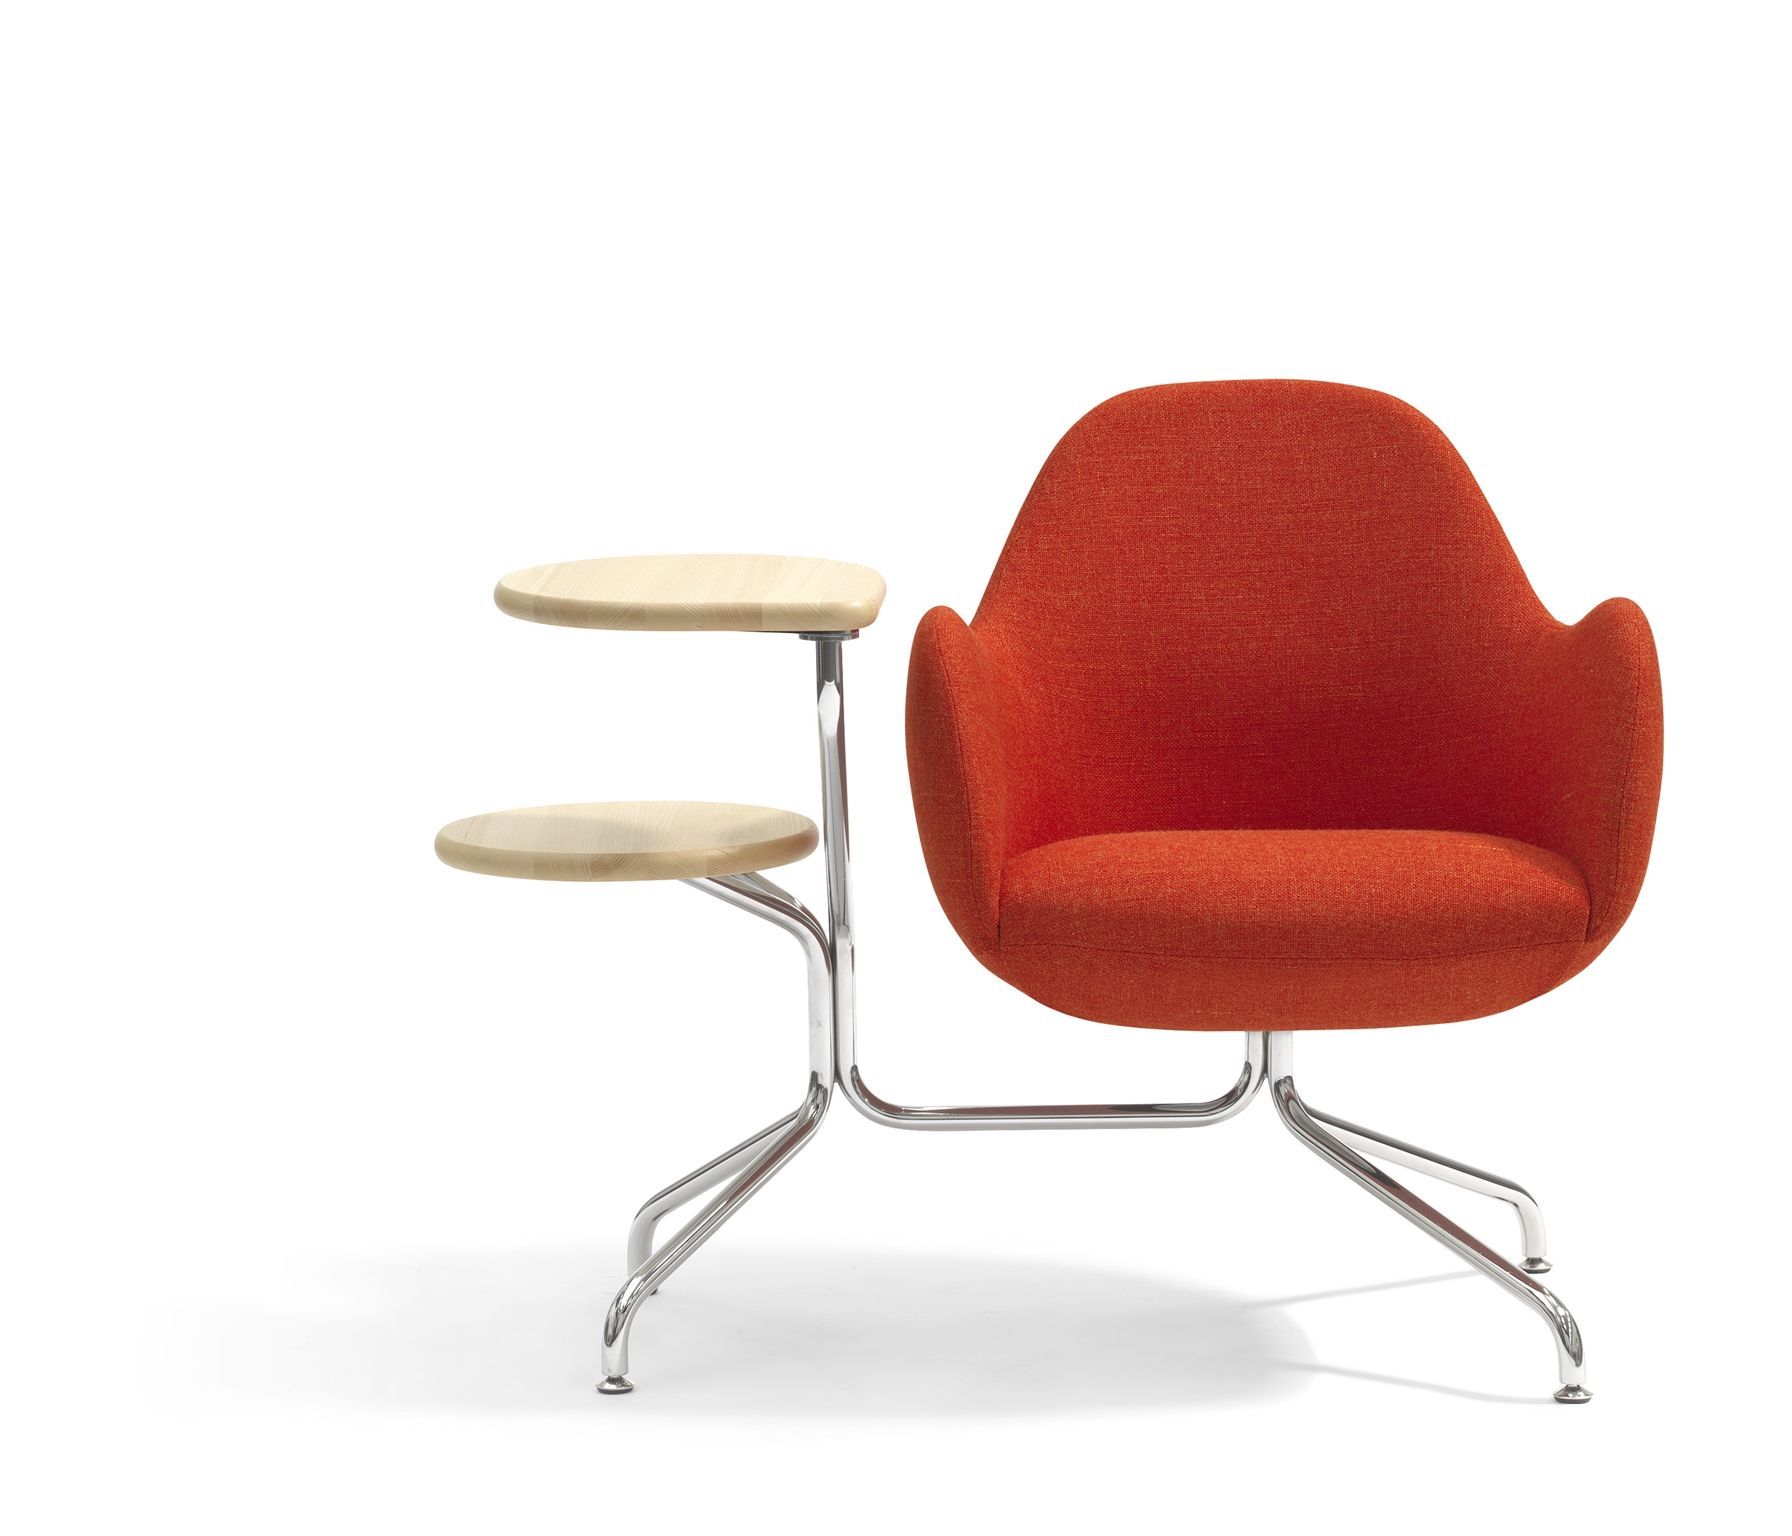 Pin by BB10 on Study Areas  Armchair design, Chair, Furniture